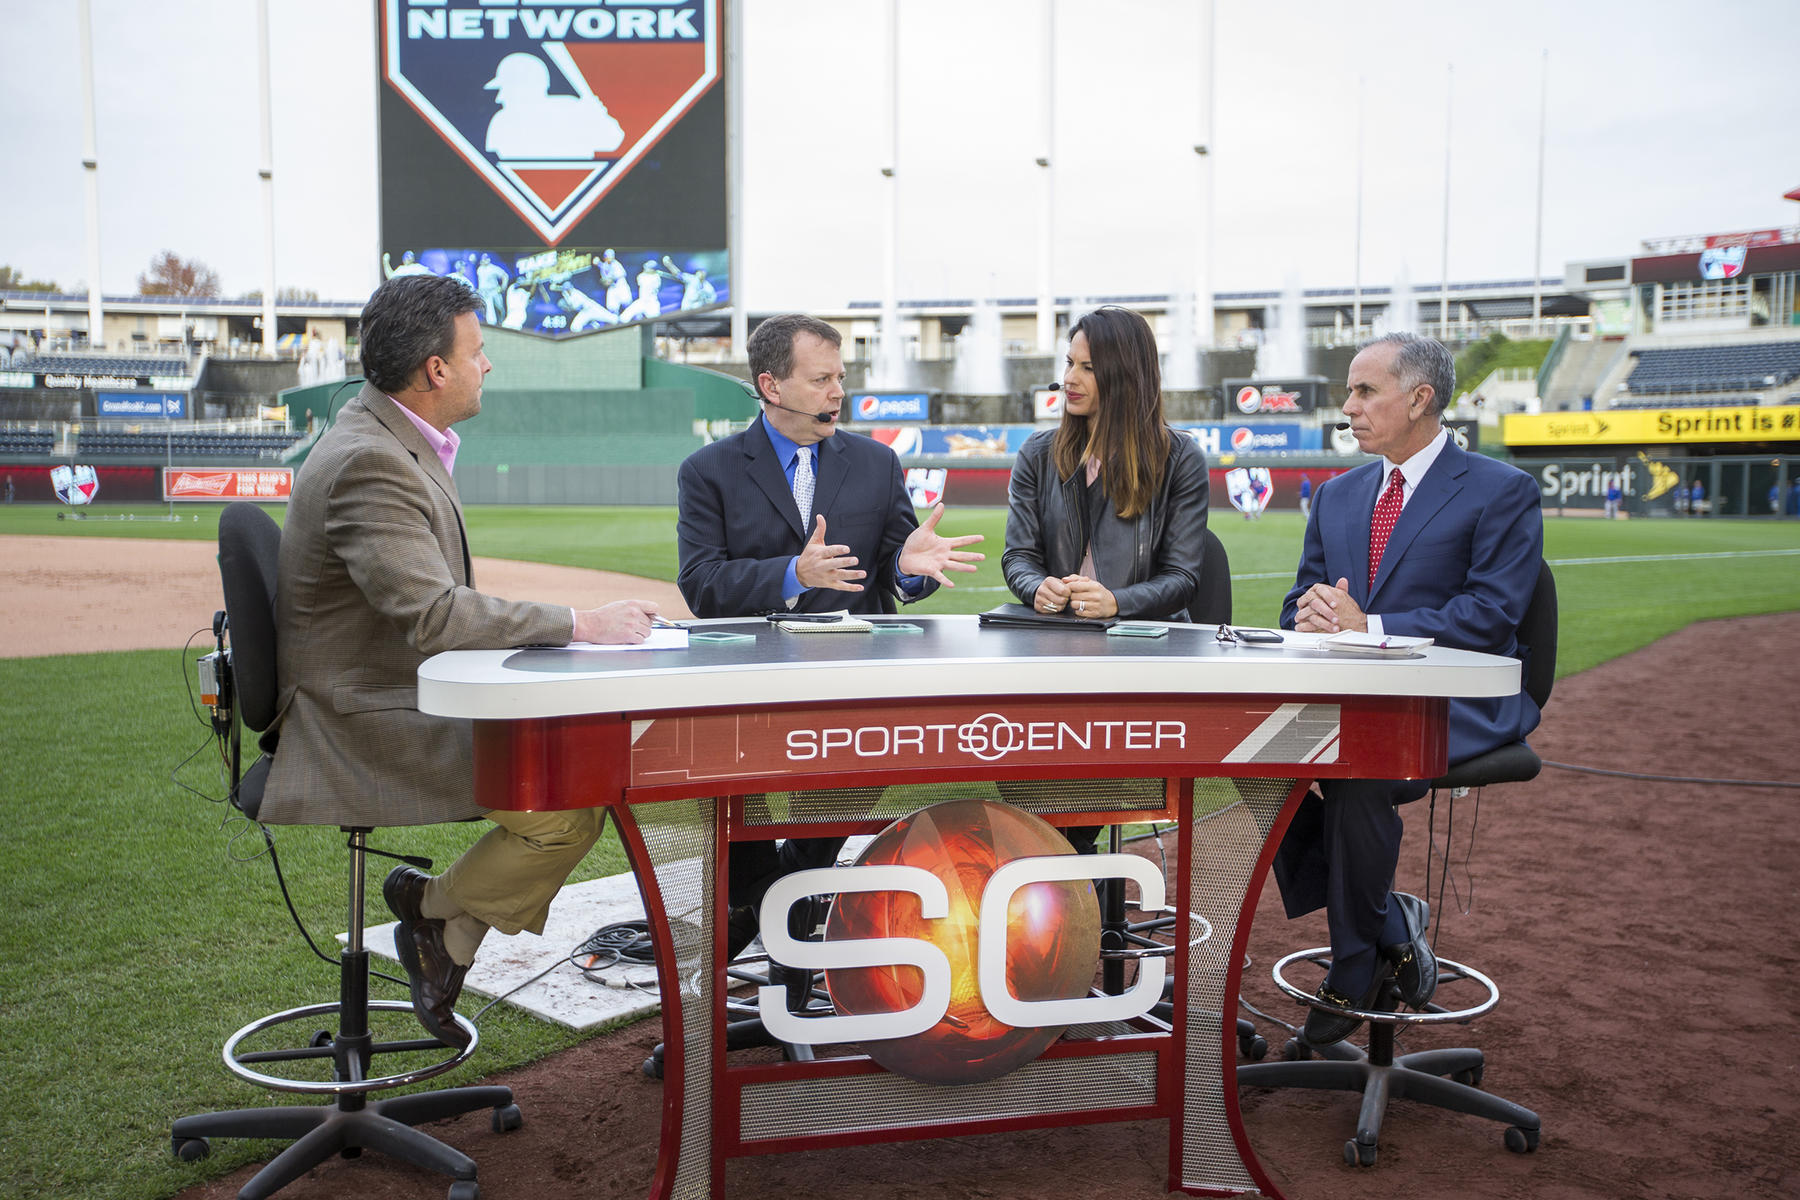 ESPN Baseball Tonight broadcasters (from left) Karl Ravech, Buster Olney, Jessica Mendoza and Tim Kurkjian talk on set the day before Game 1 of the 2015 World Series on Oct. 26, 2015 at Kauffman Stadium in Kansas City, Mo. (Jean Fruth / National Baseball Hall of Fame)